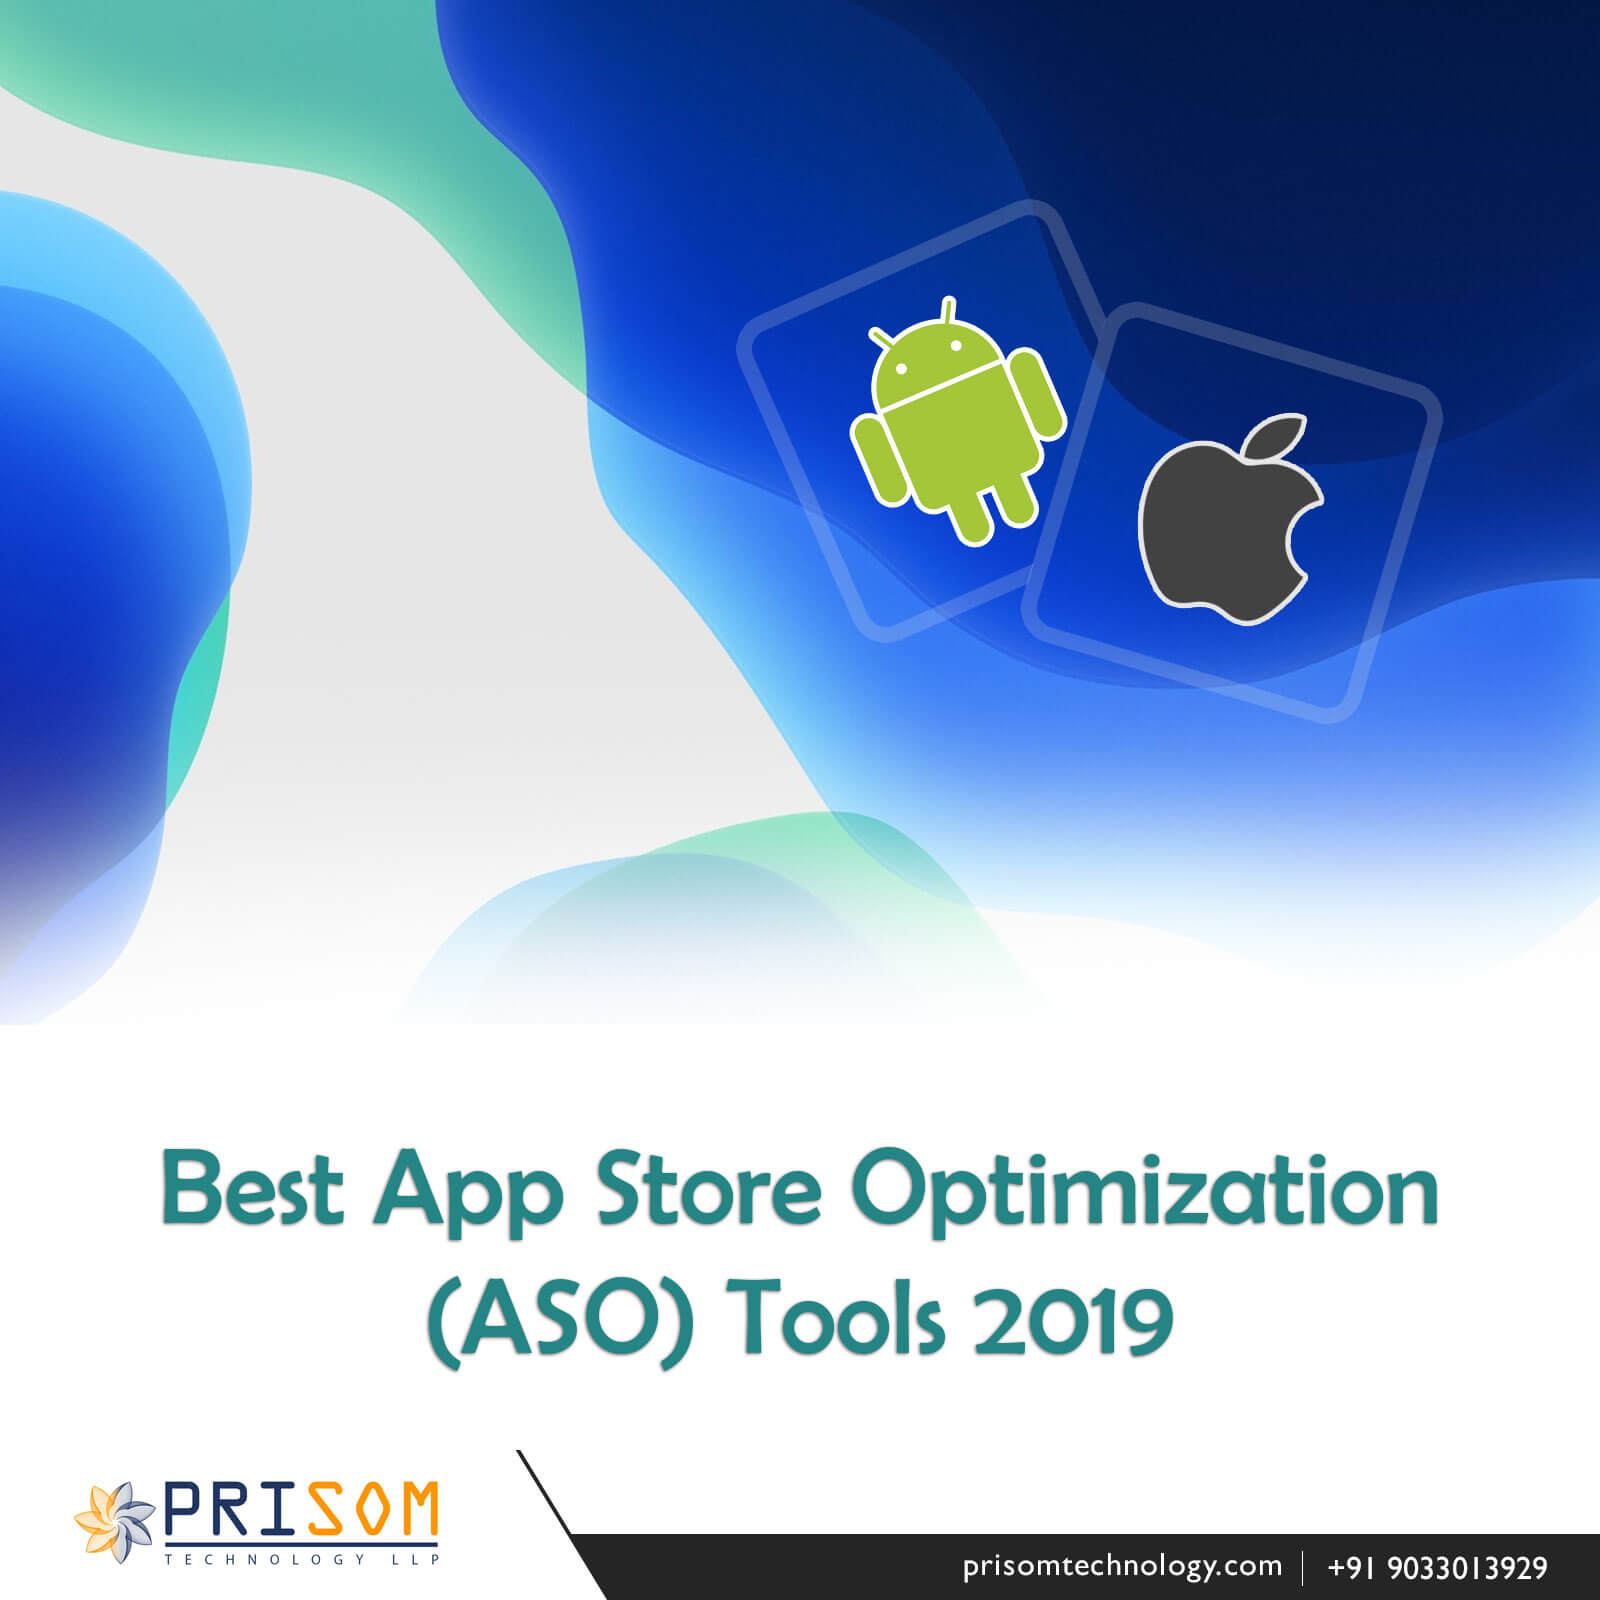 Best App Store Optimization (ASO) Tools 2019